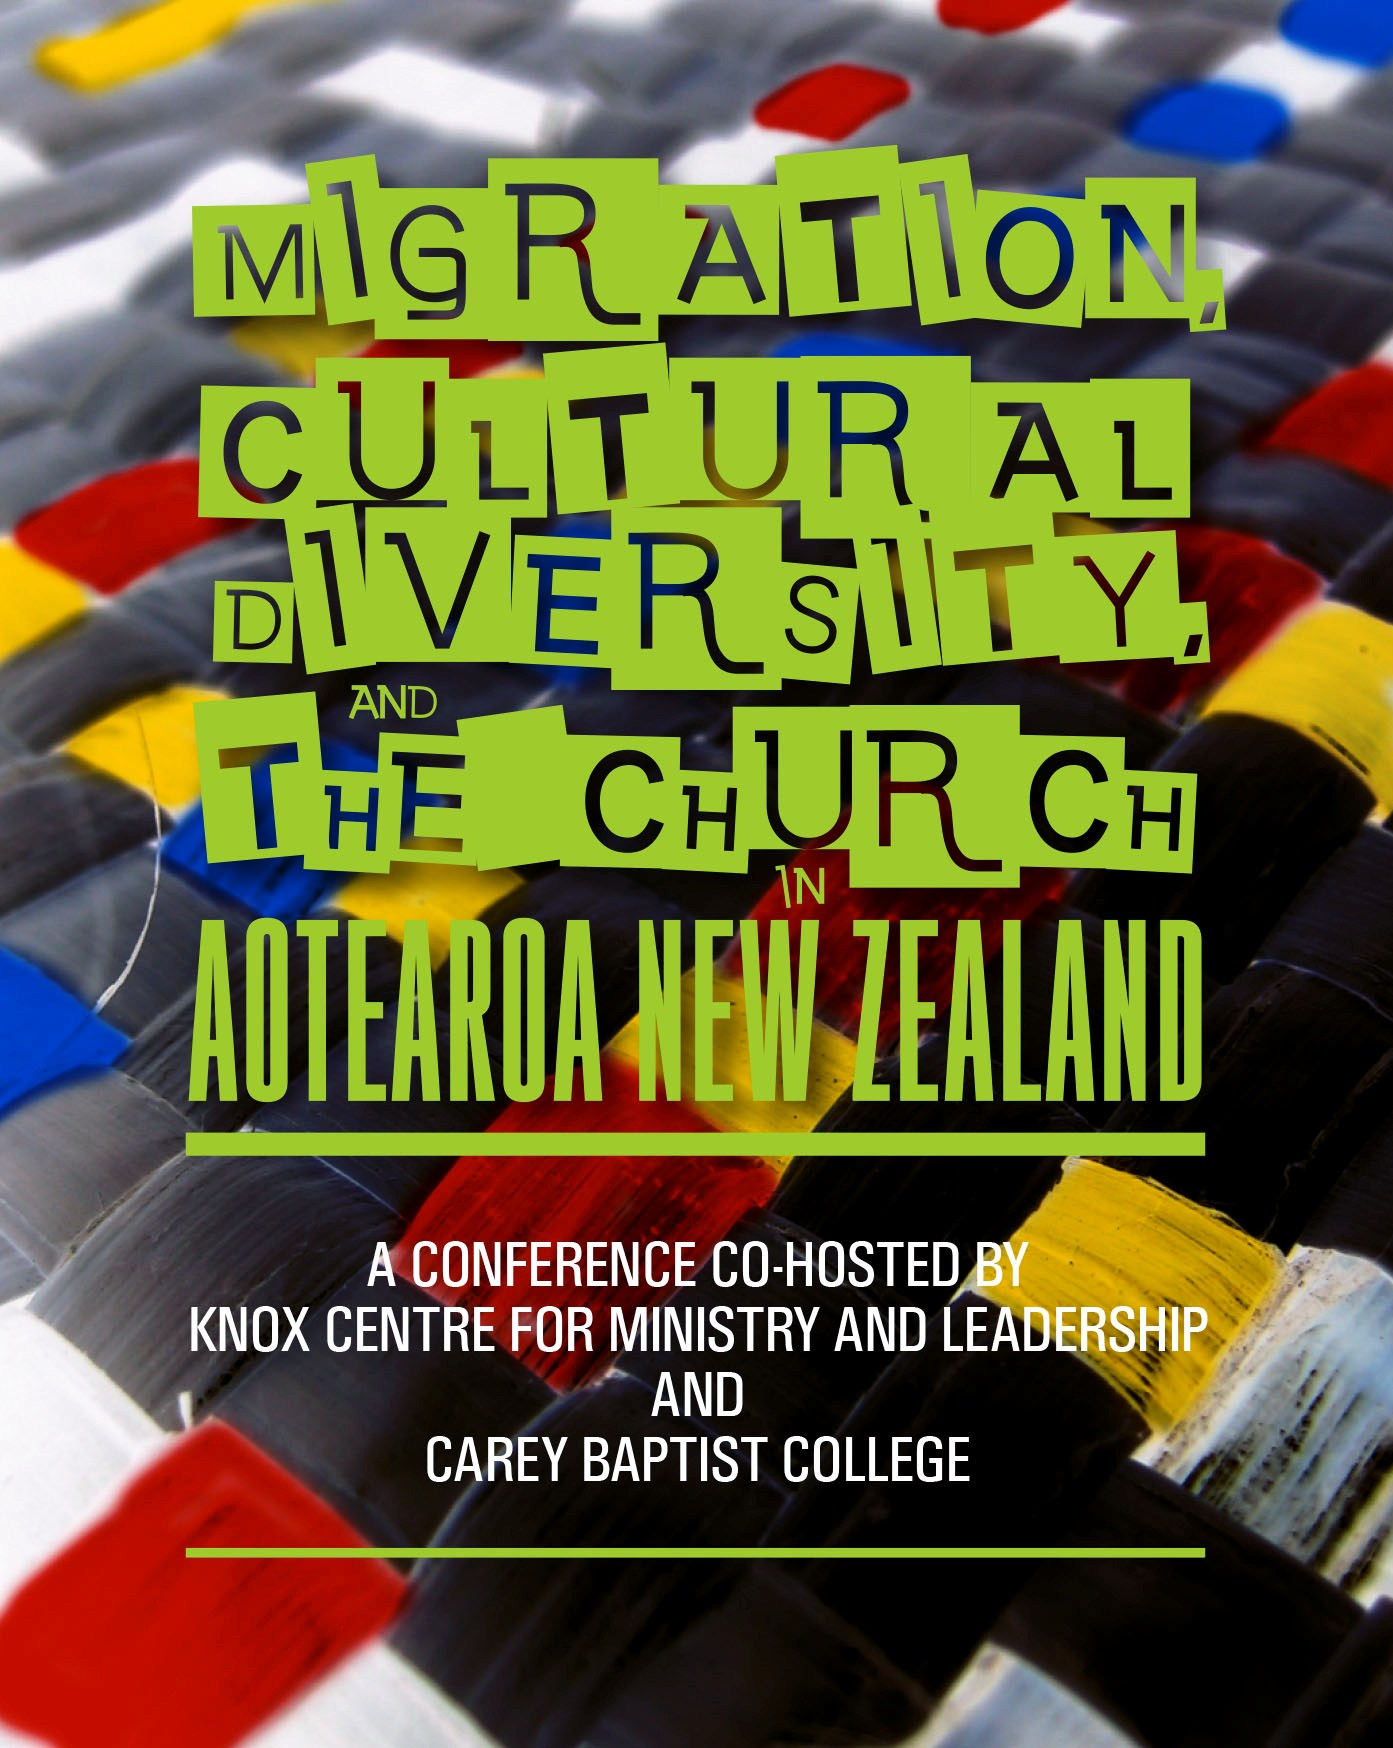 managing diversity in new zealand essay Aotearoa ethnic network journal volume 1, issue 1 june 2006 33 aenjournal multiculturalism in new zealand – the need for a new paradigm mervin singham.